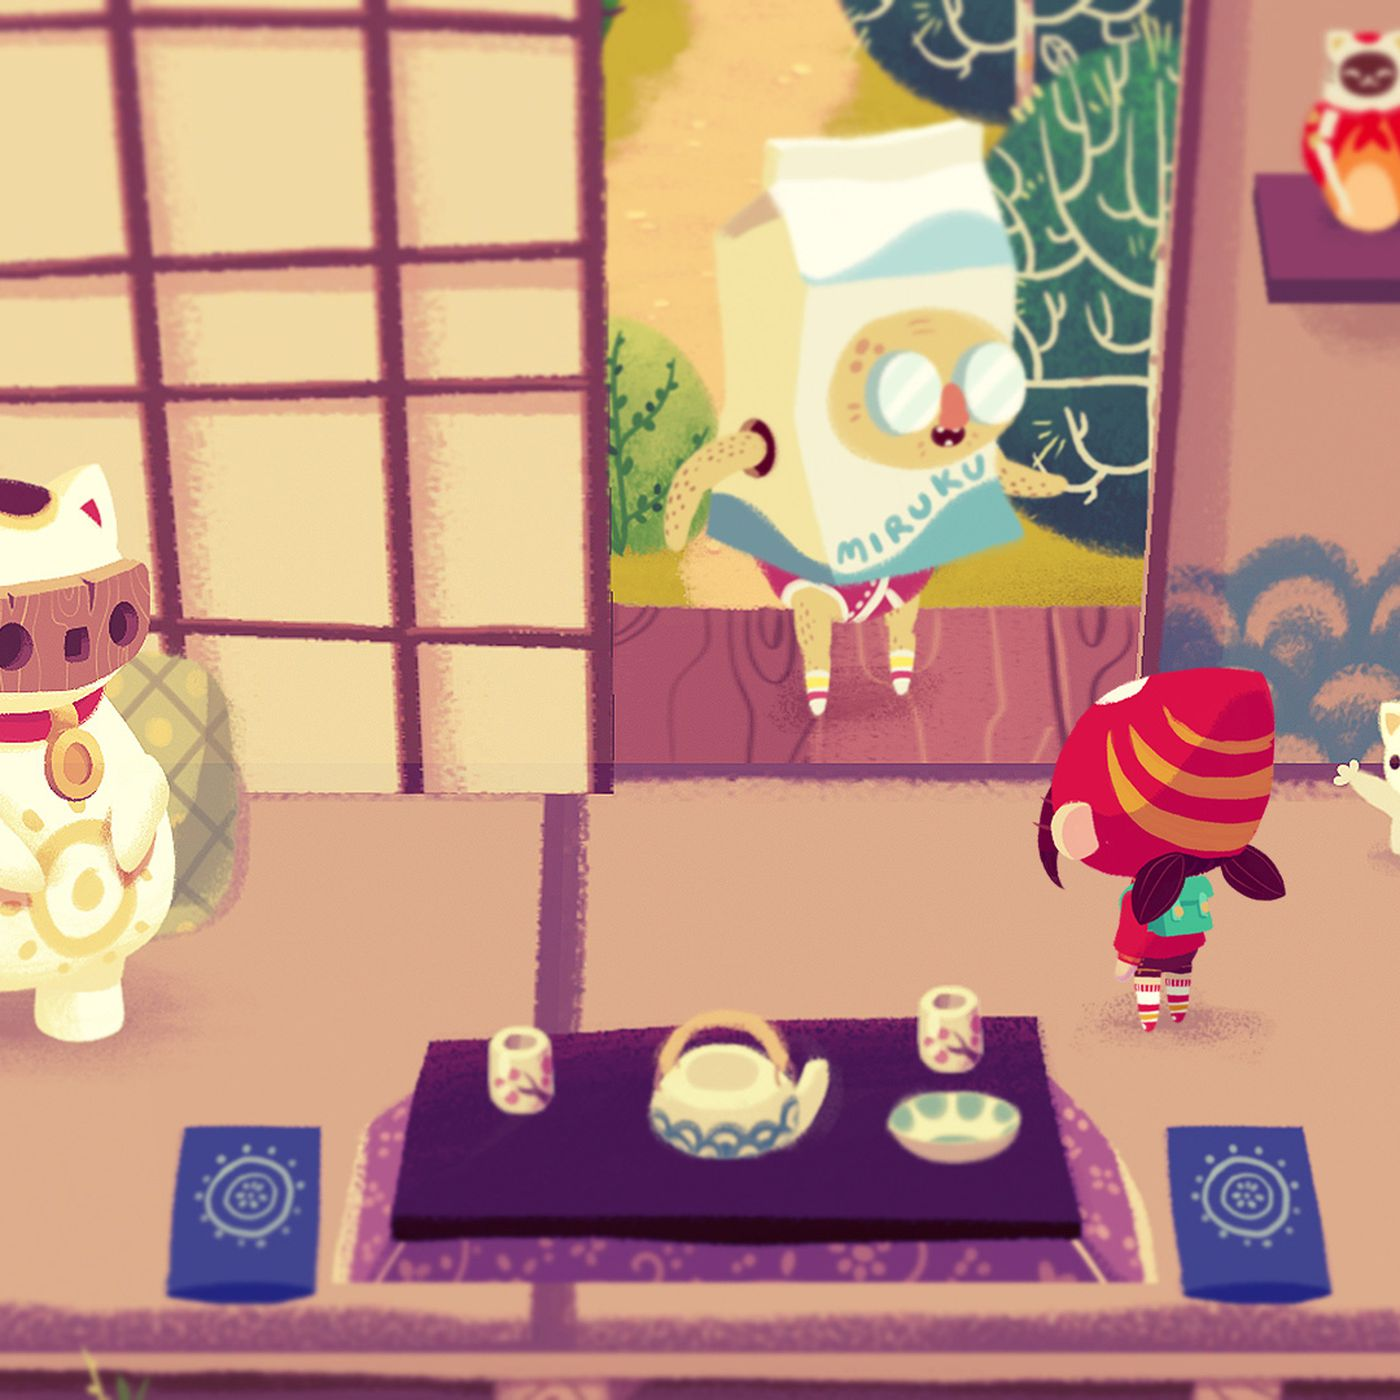 Mineko S Night Market Is A Cat Filled Spin On Animal Crossing